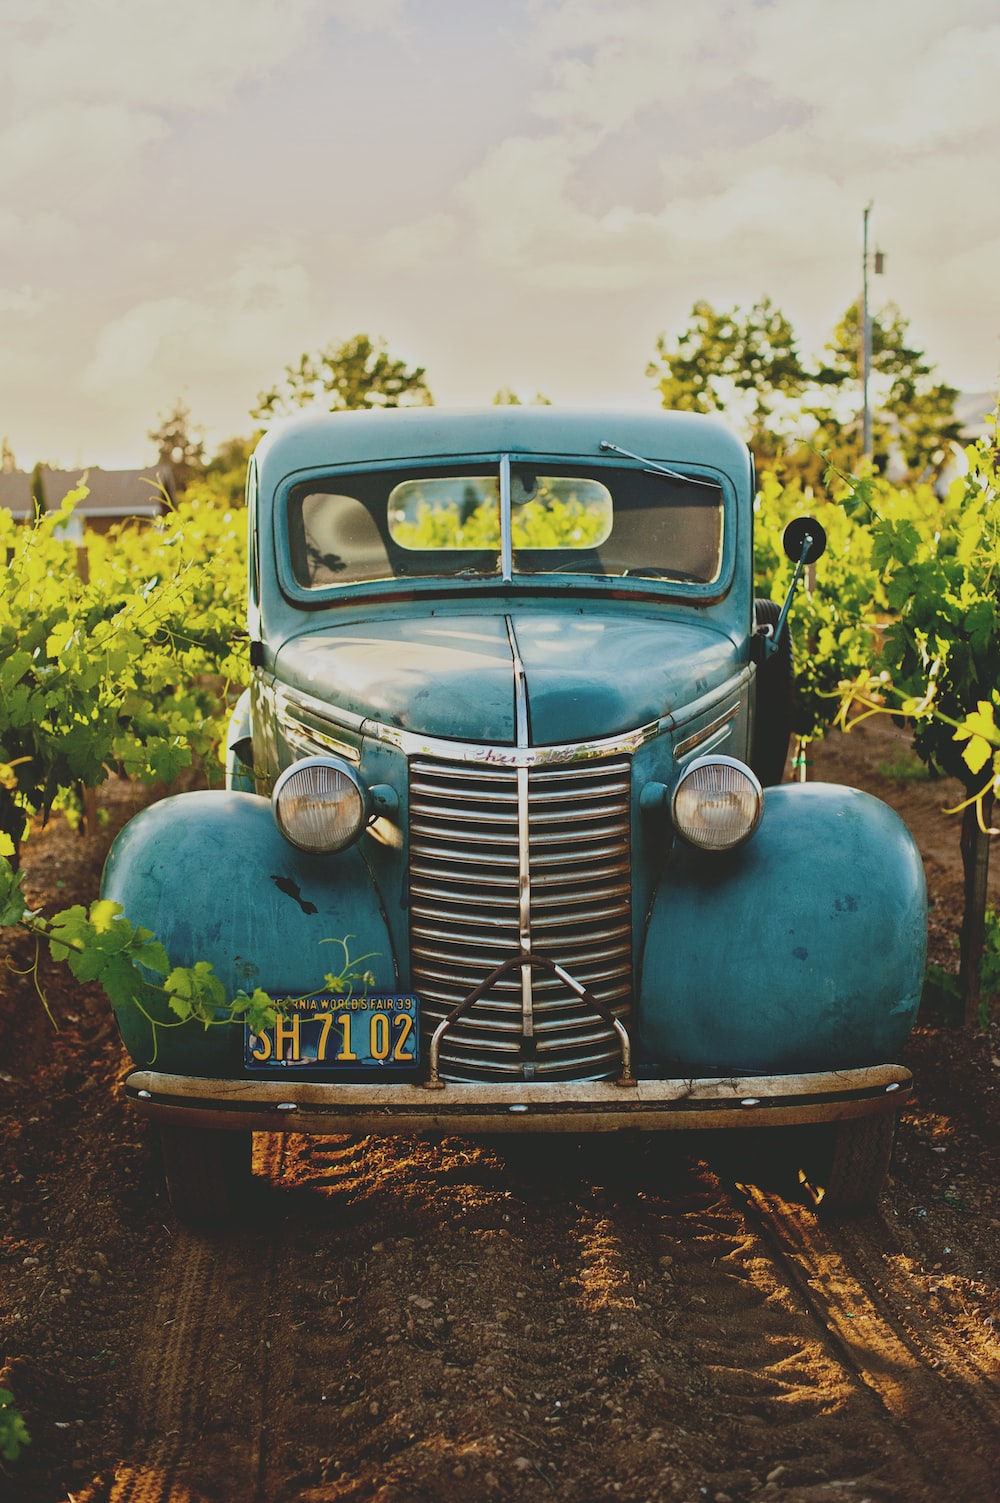 100+ Old Car Pictures | Download Free Images on Unsplash